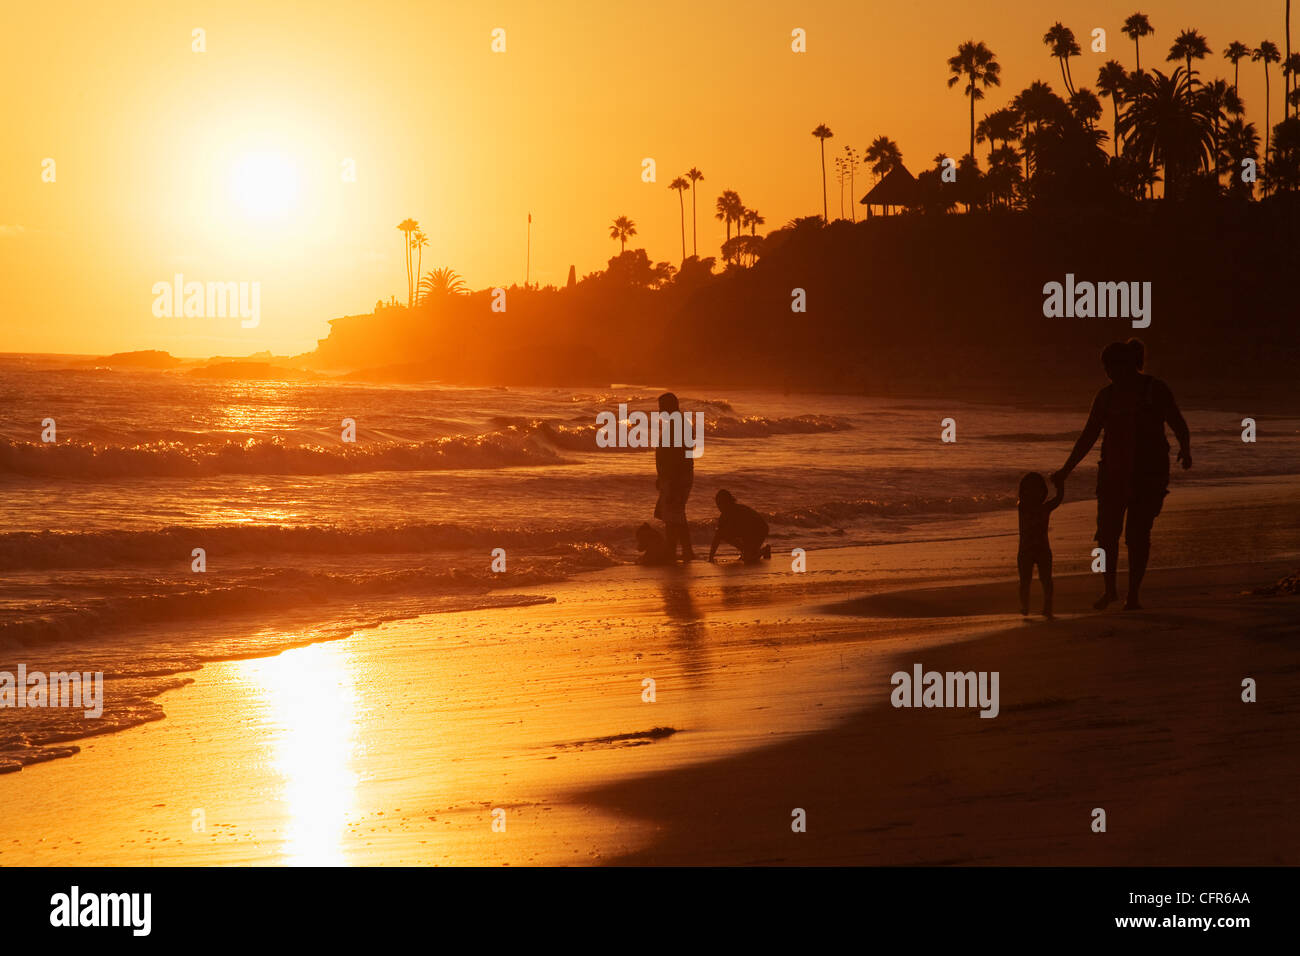 Laguna Beach, Orange County, California, United States of America, North America Stock Photo